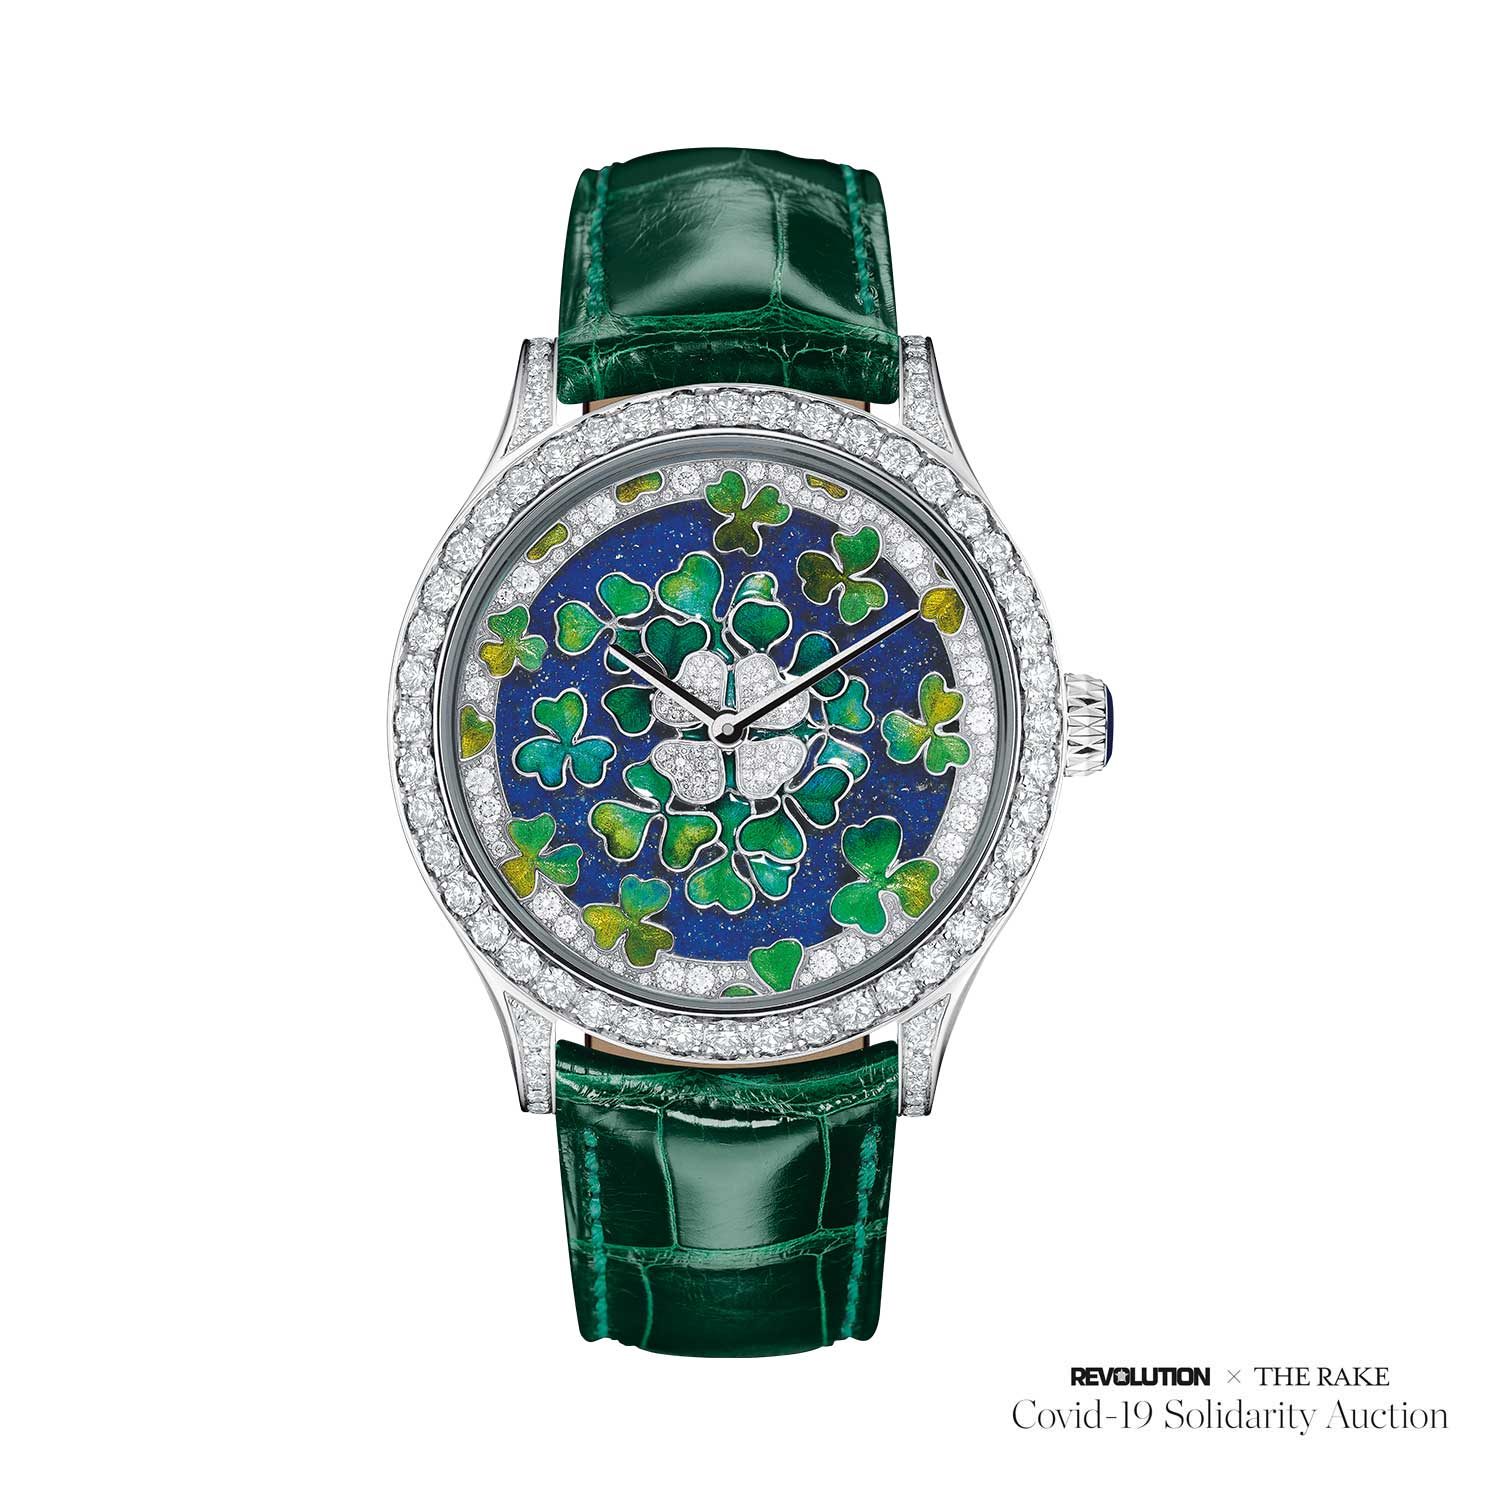 Van Cleef & Arpels Midnight Palais de la chance Trèfles Decor for Revolution x The Rake Covid-19 Solidarity Auction